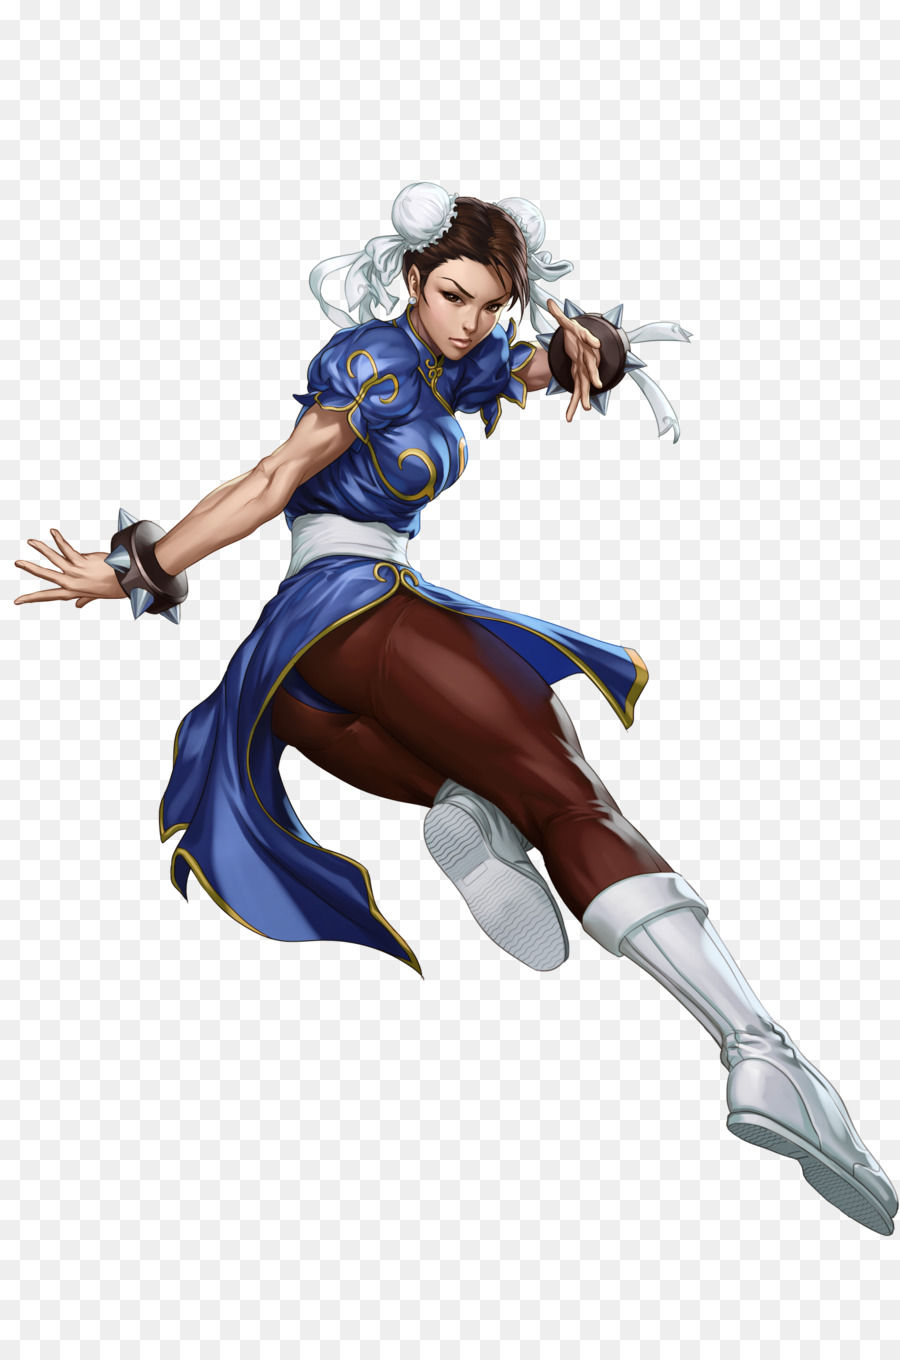 Chun Li Png (107+ images in Collection) Page 3.